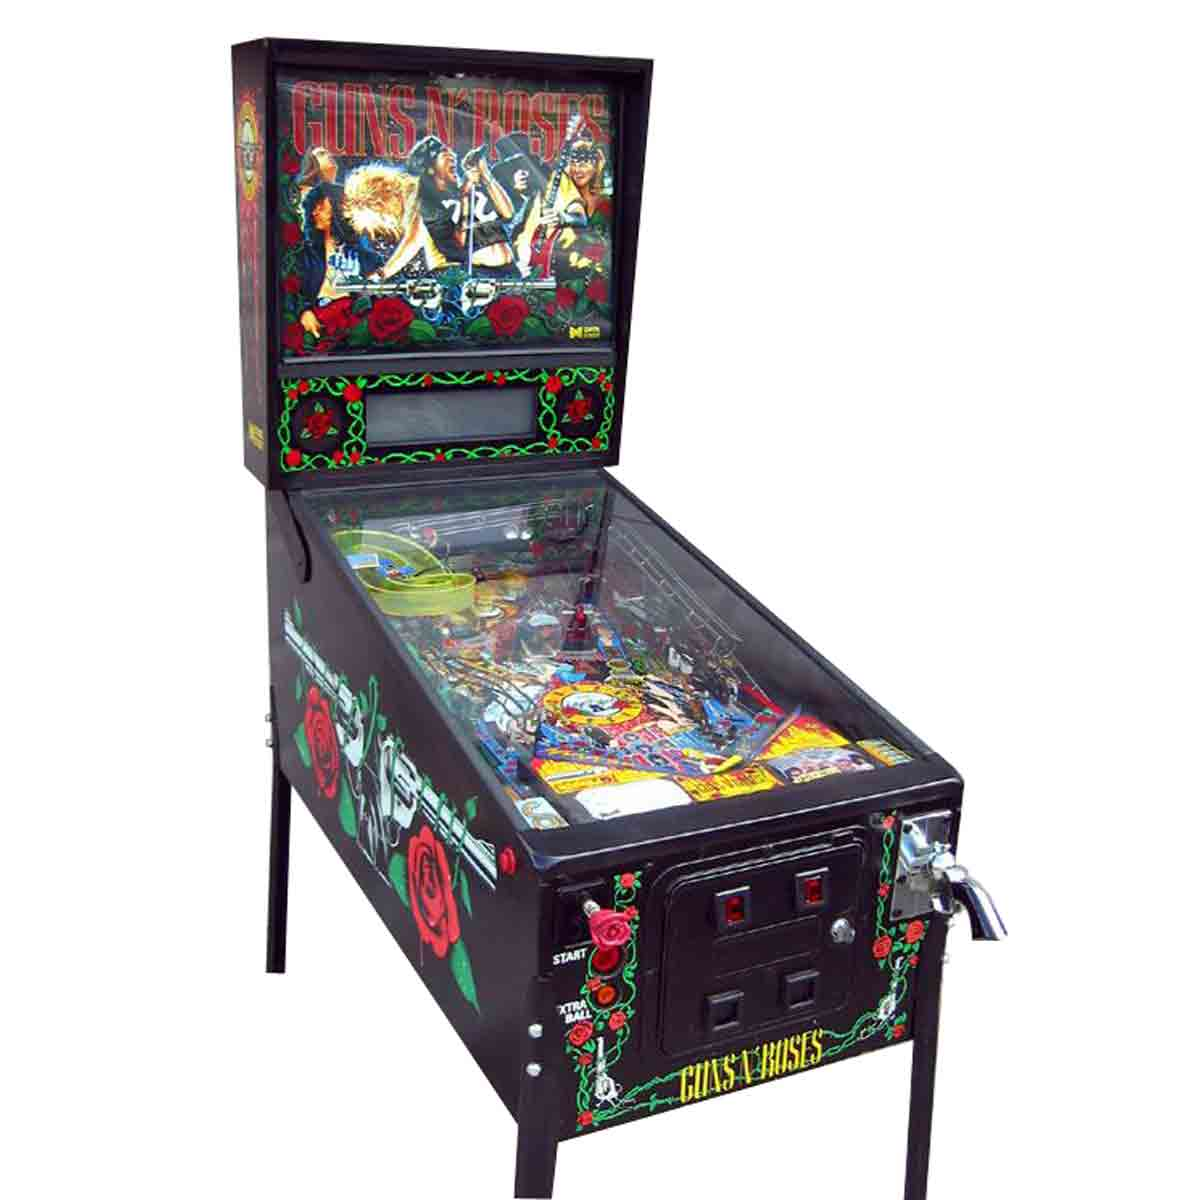 Buy Guns N' Roses Pinball Machine Online at $8999